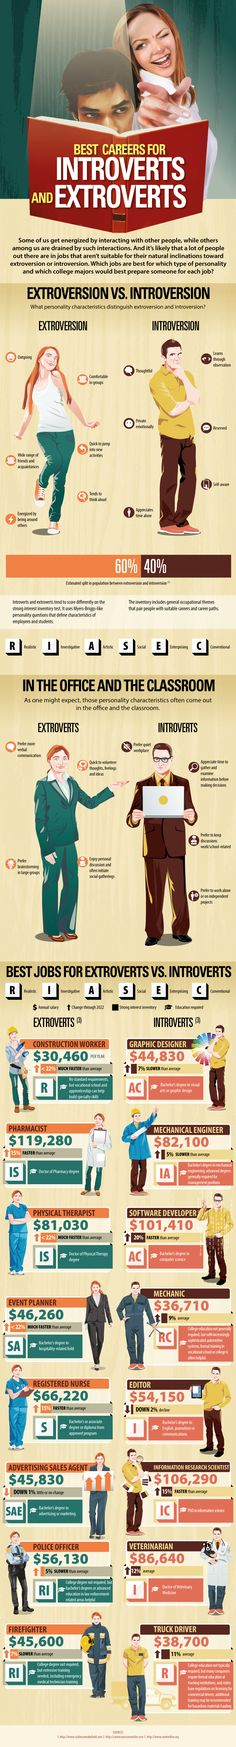 Introverted Versus Extroverted Personalities & Interest Inventory Career Infographic http://careerassessmentsite.com/tests/mbti-test/strong-interest-inventory/personality-types/careers-infographic